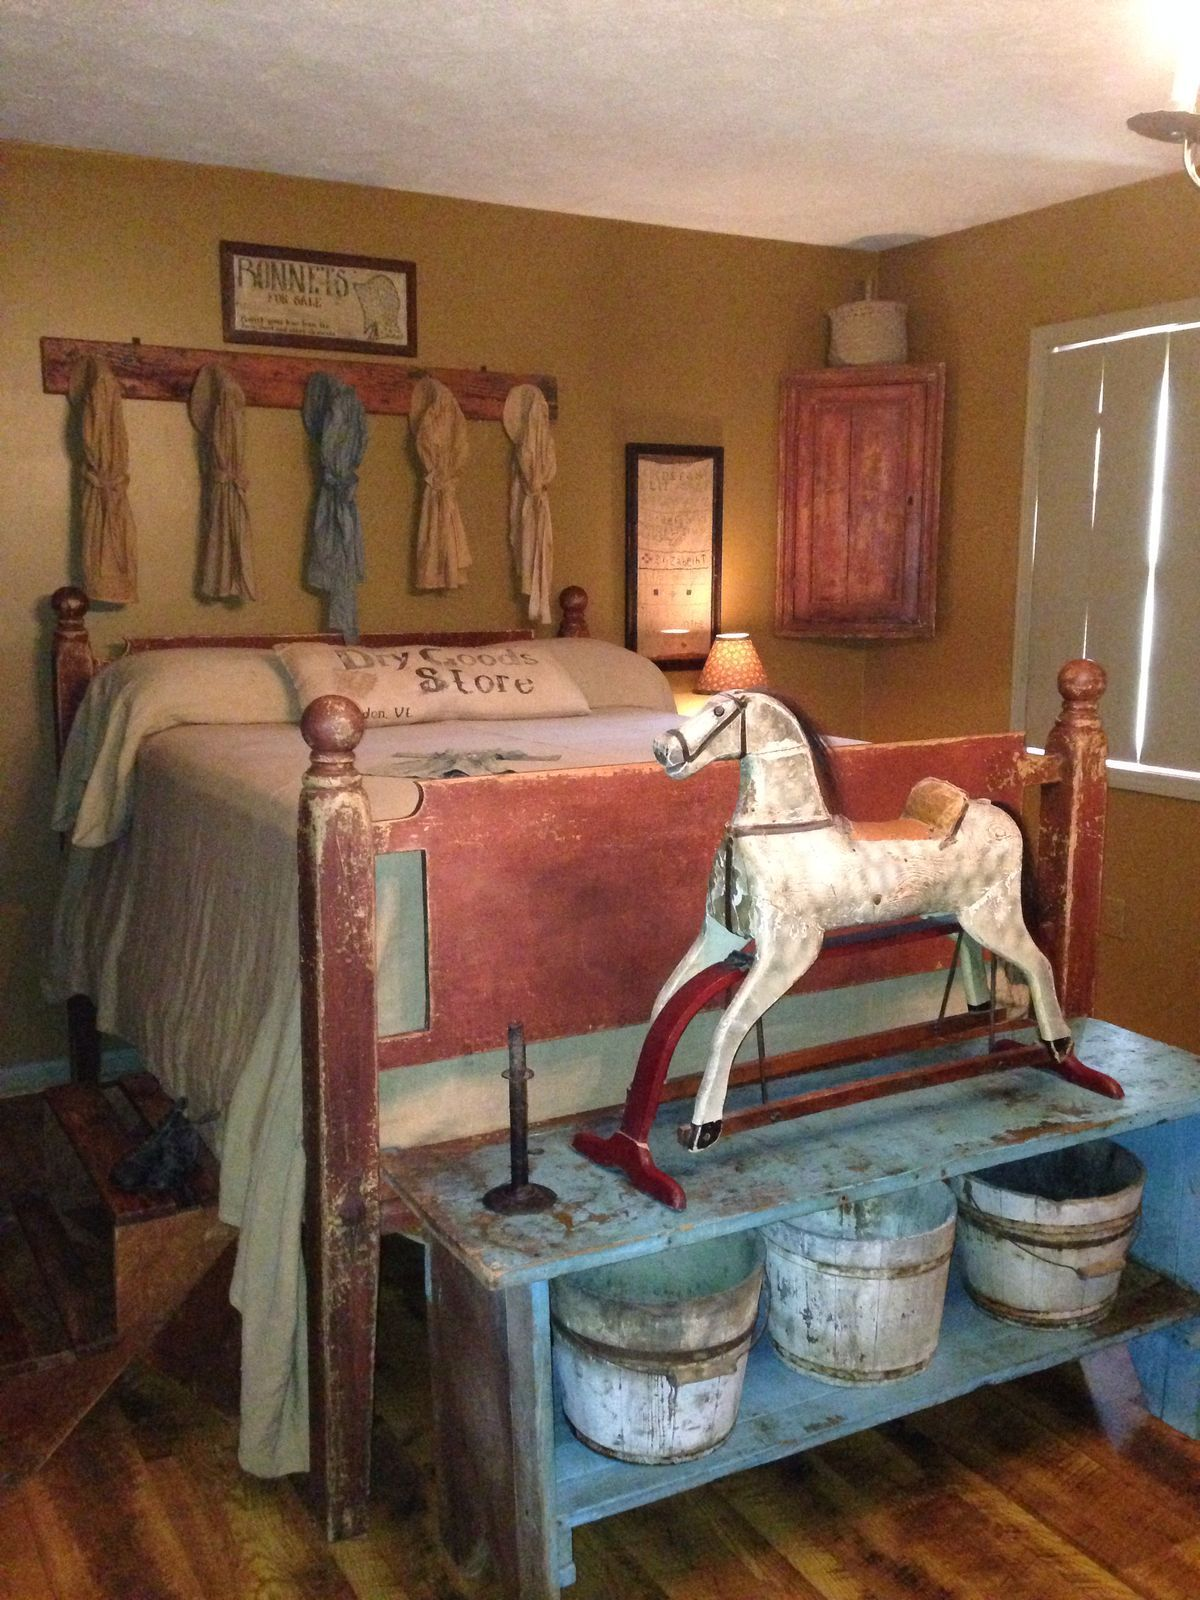 cheap primitive country bedroom decorating ideas | Pin by Pam Mower on primitive crafts in 2019 | Primitive ...